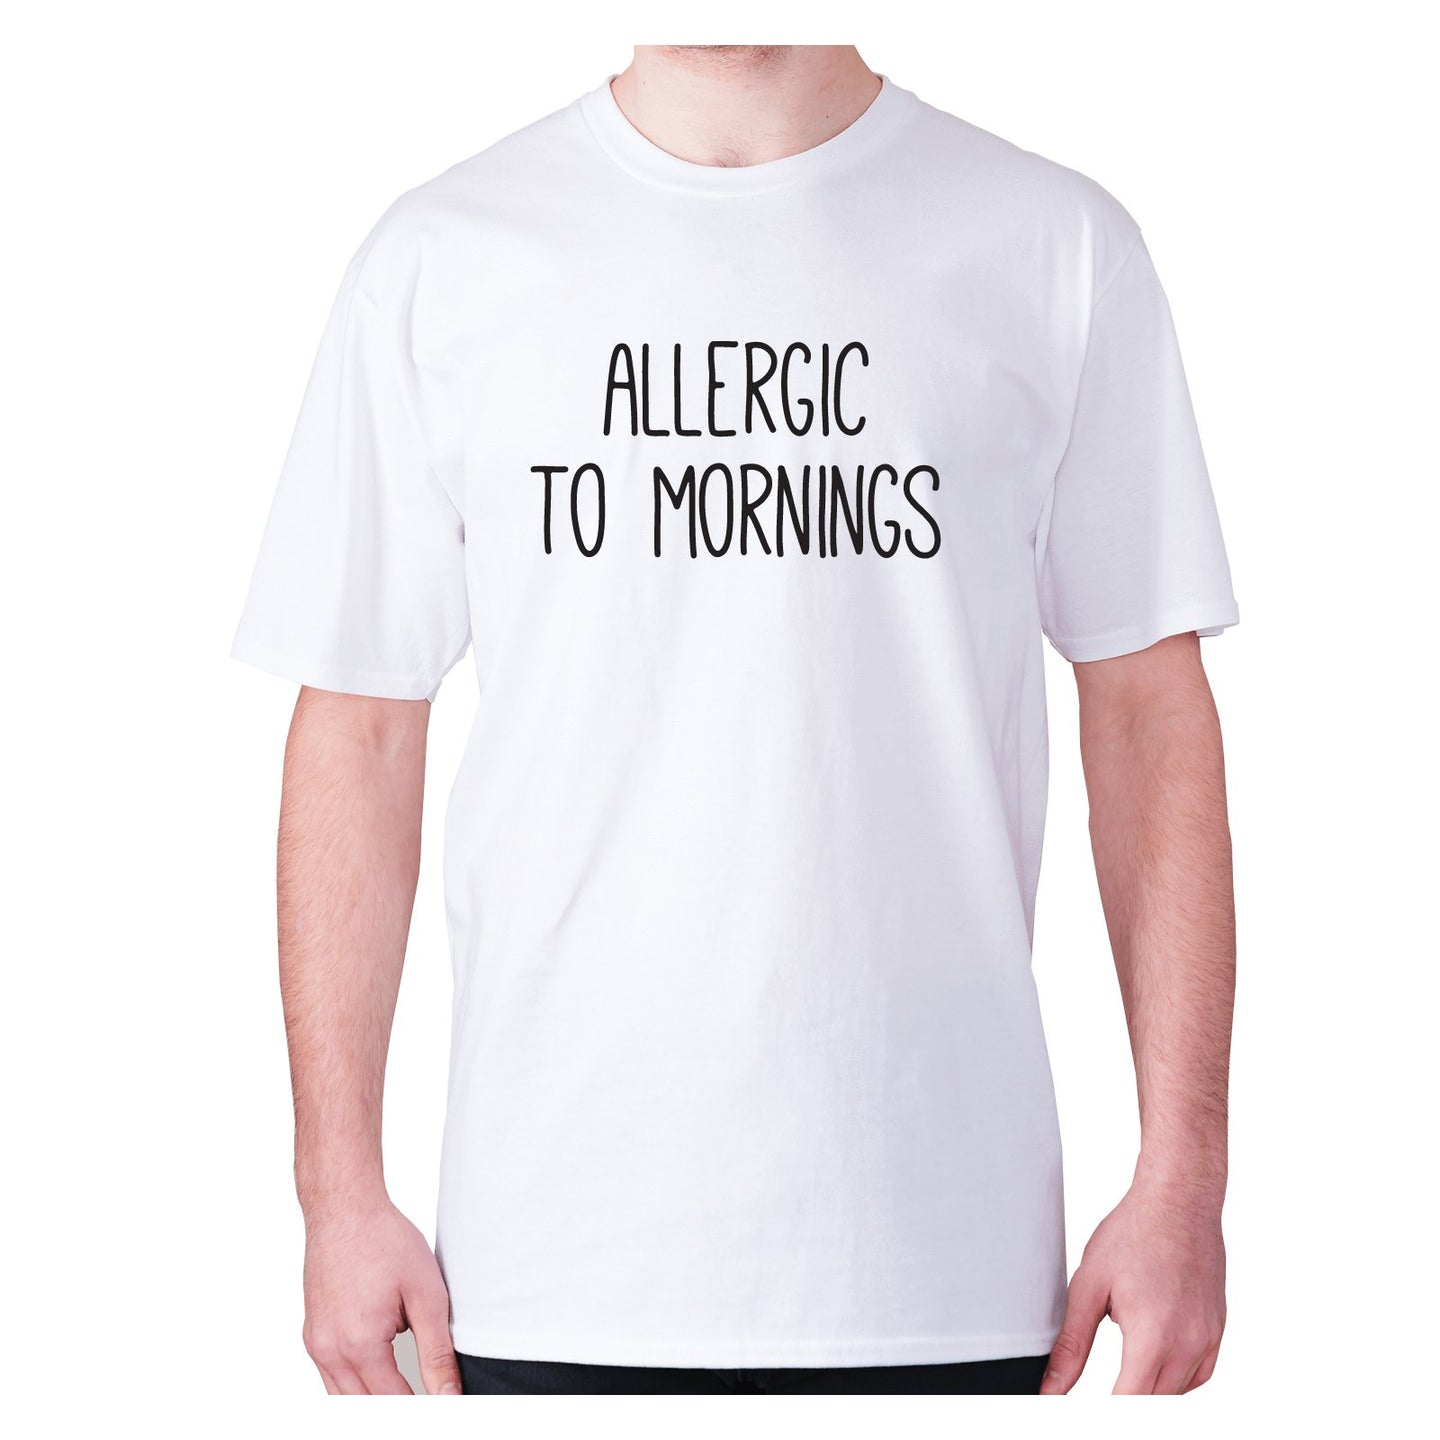 Allergic to Mornings - men's premium t-shirt - Graphic Gear